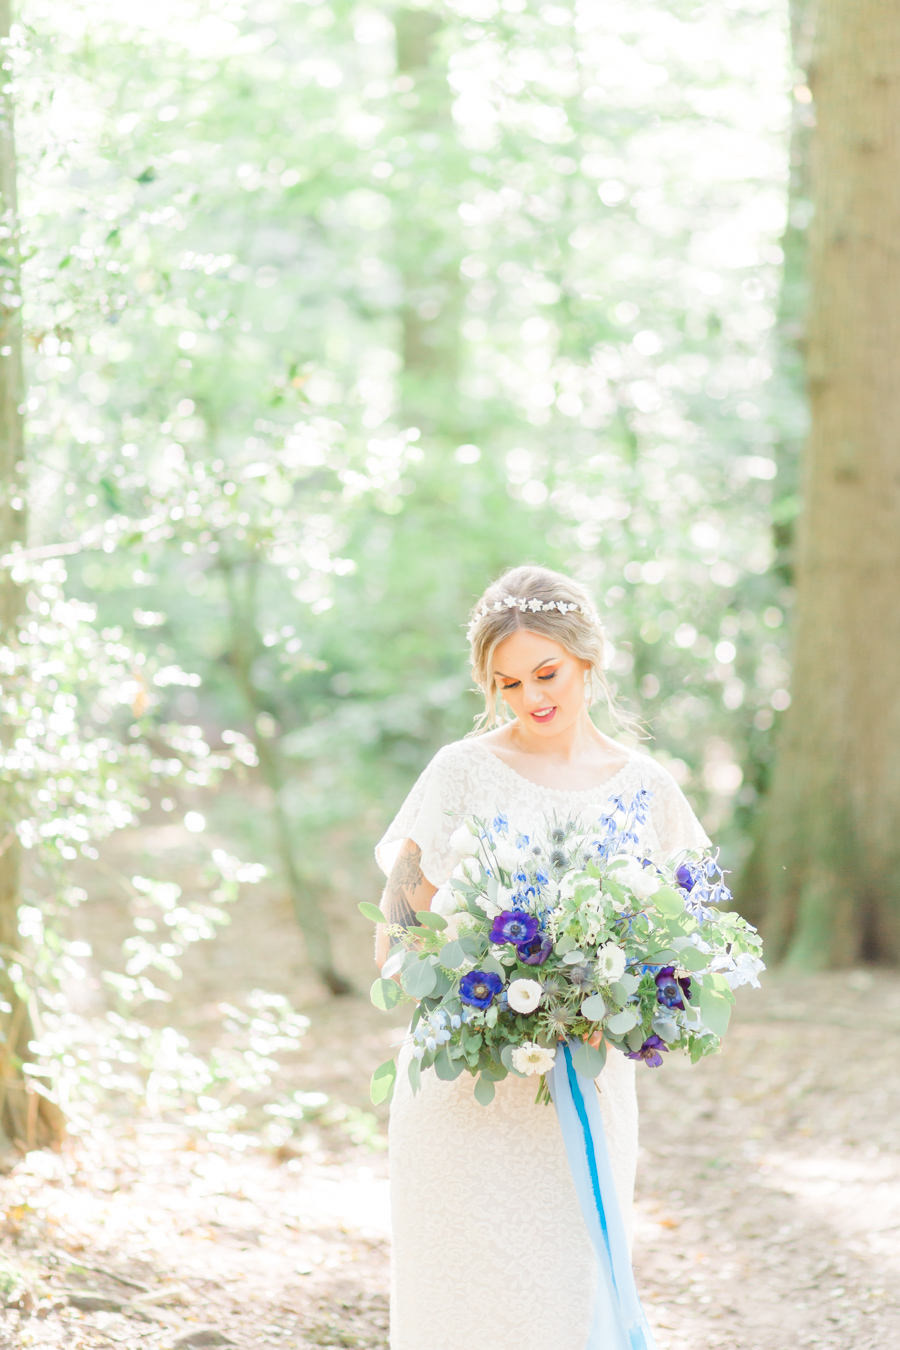 Beautiful and delicate blue tones for a woodland wedding styled by Sara's Events Flowers. Photo credit Natalie Stevenson Photography (26)